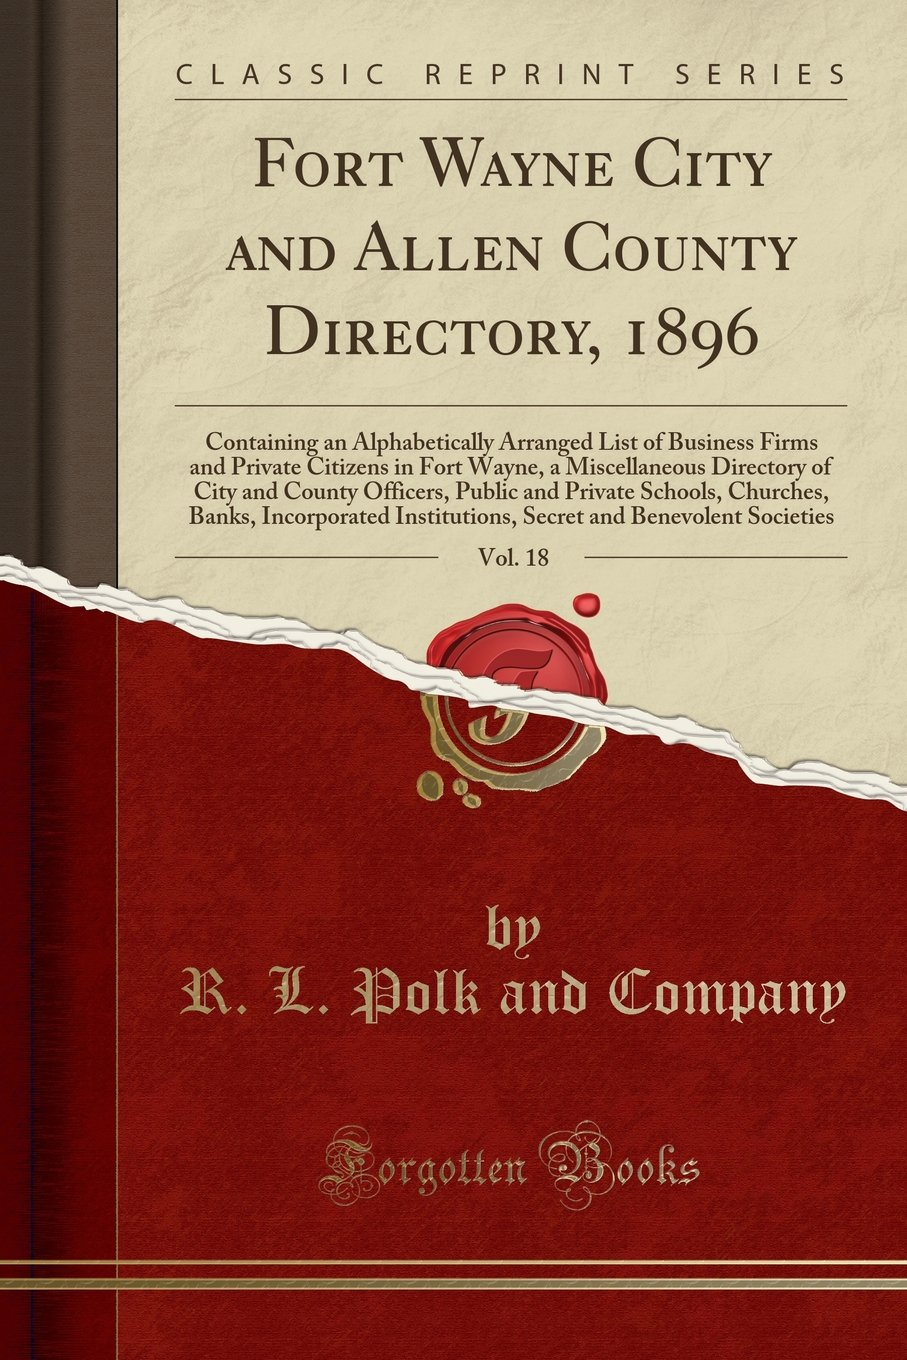 Download Fort Wayne City and Allen County Directory, 1896, Vol. 18: Containing an Alphabetically Arranged List of Business Firms and Private Citizens in Fort ... Public and Private Schools, Churches, Banks, pdf